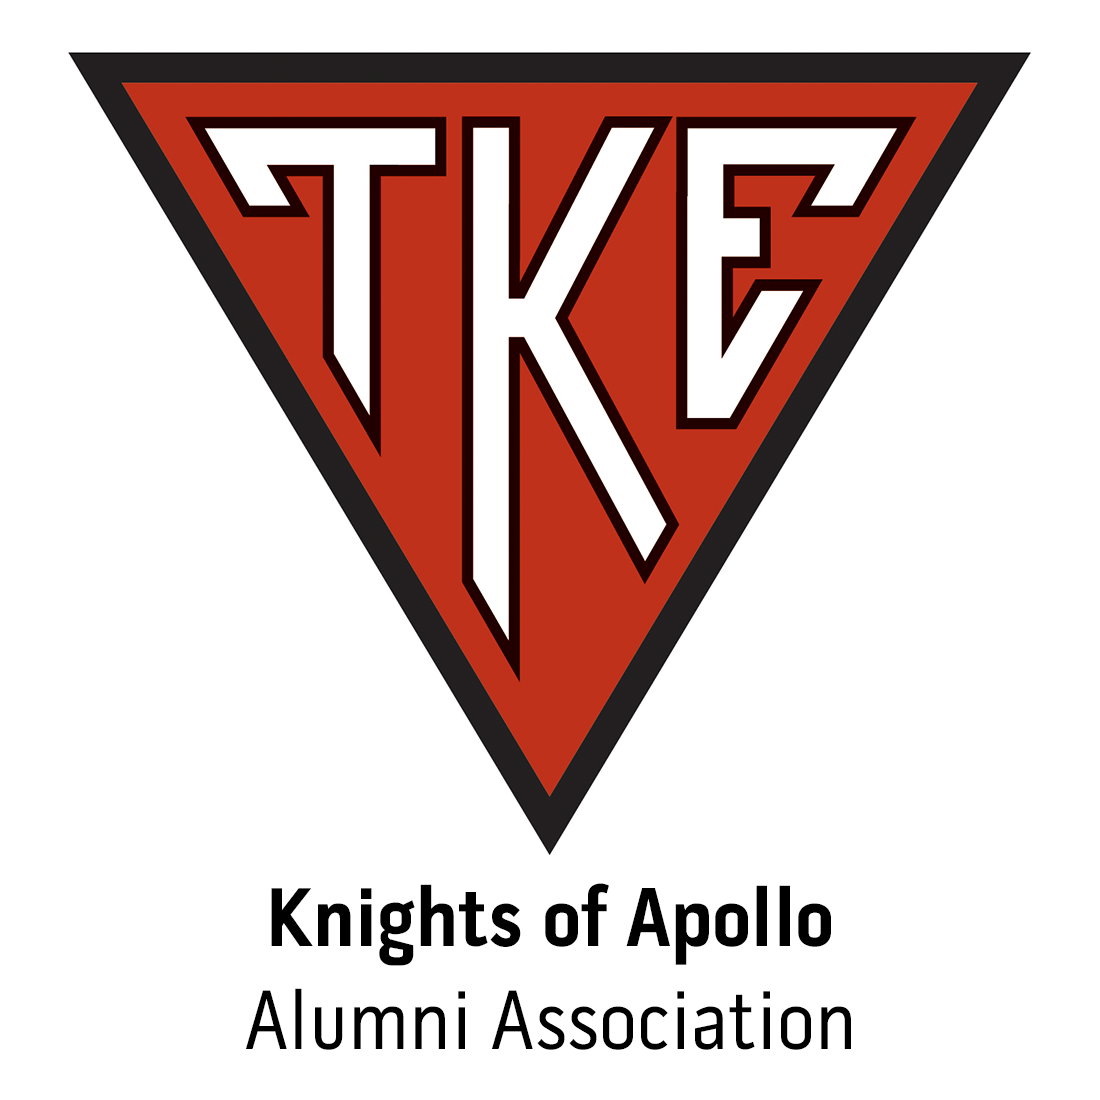 Knights of Apollo Alumni Association at Knights of Apollo